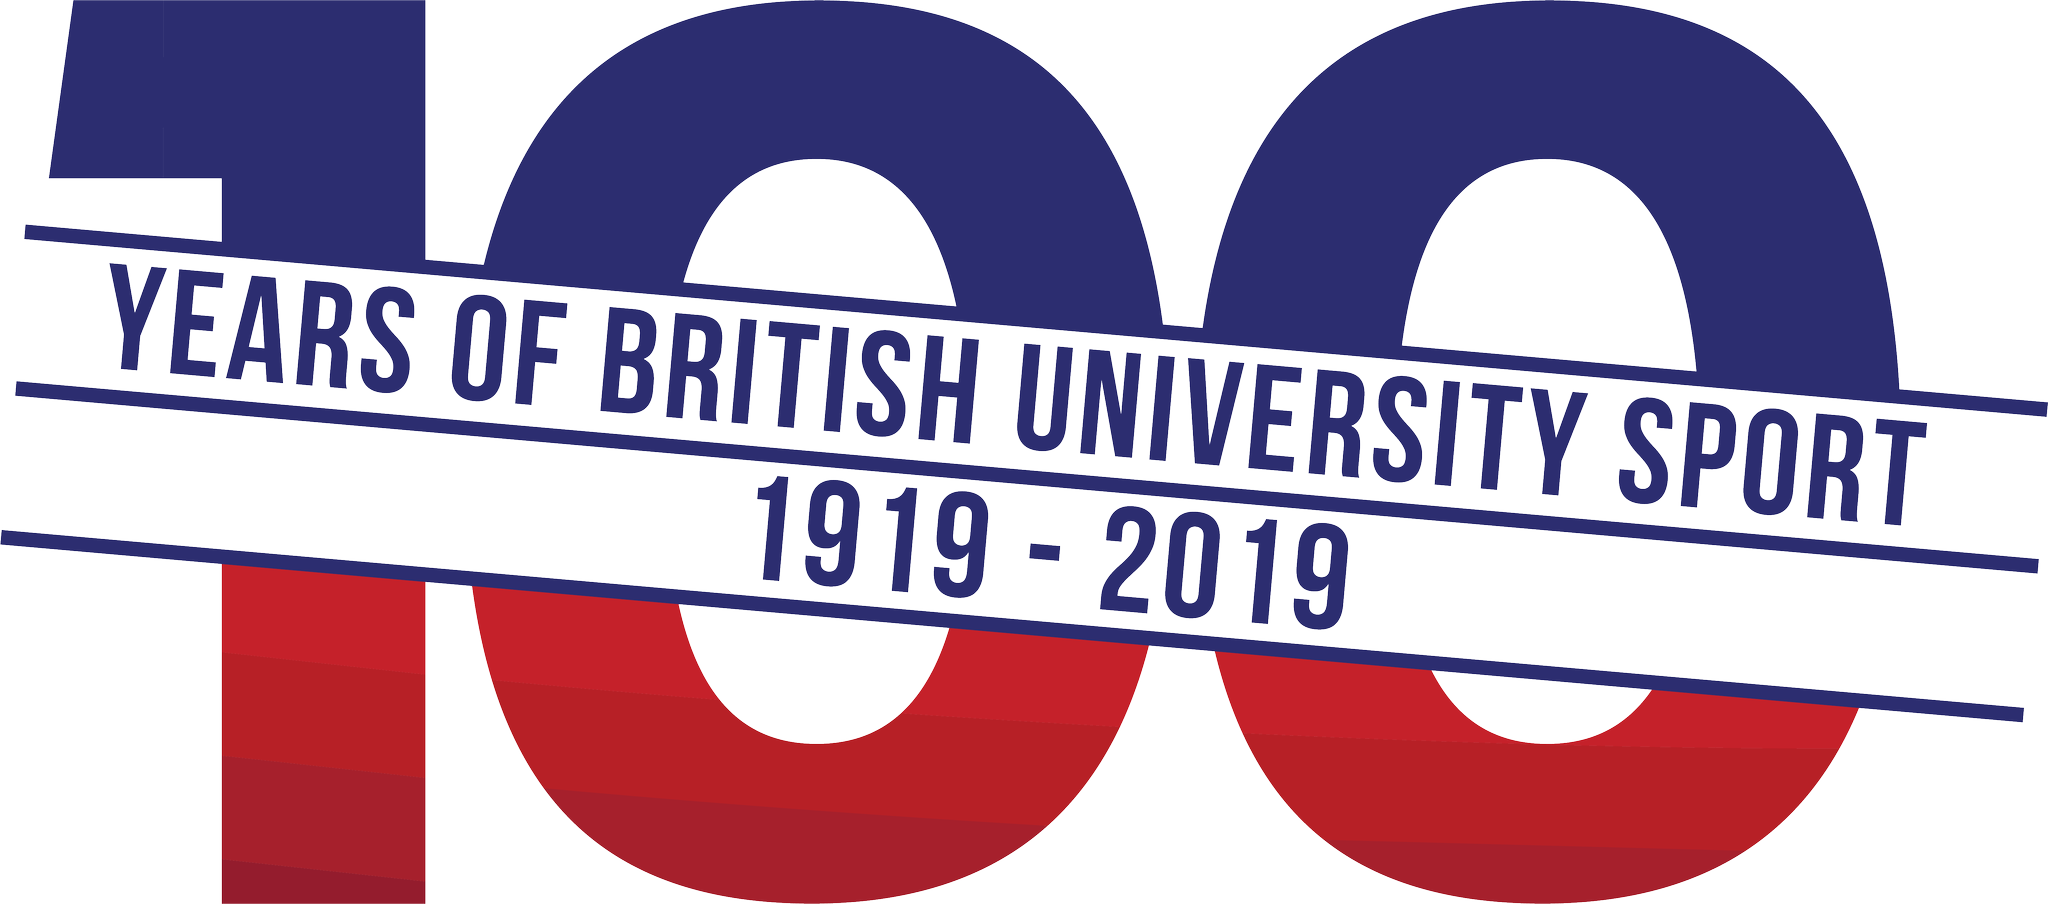 BUCS have launched celebrations marking 100 years of British university sport, including a cenetary logo ©BUCS